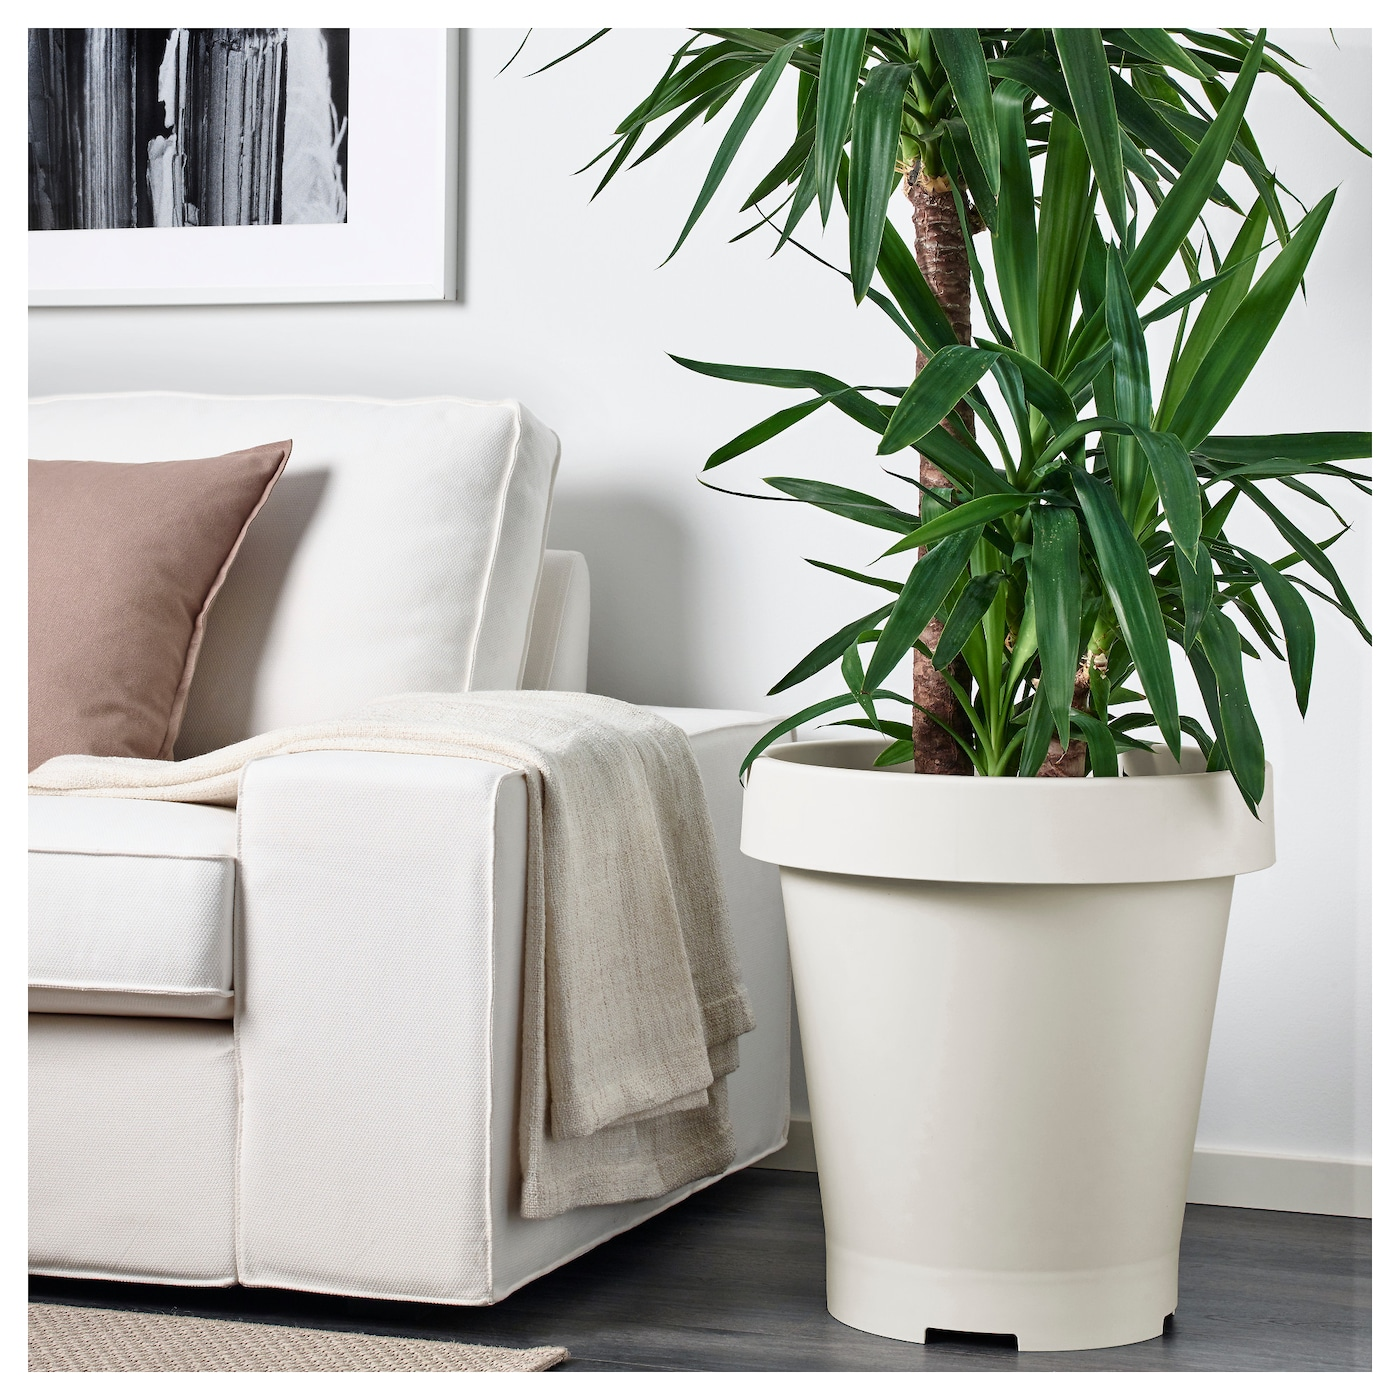 gr va cache pot int rieur ext rieur blanc 42x50 cm ikea. Black Bedroom Furniture Sets. Home Design Ideas